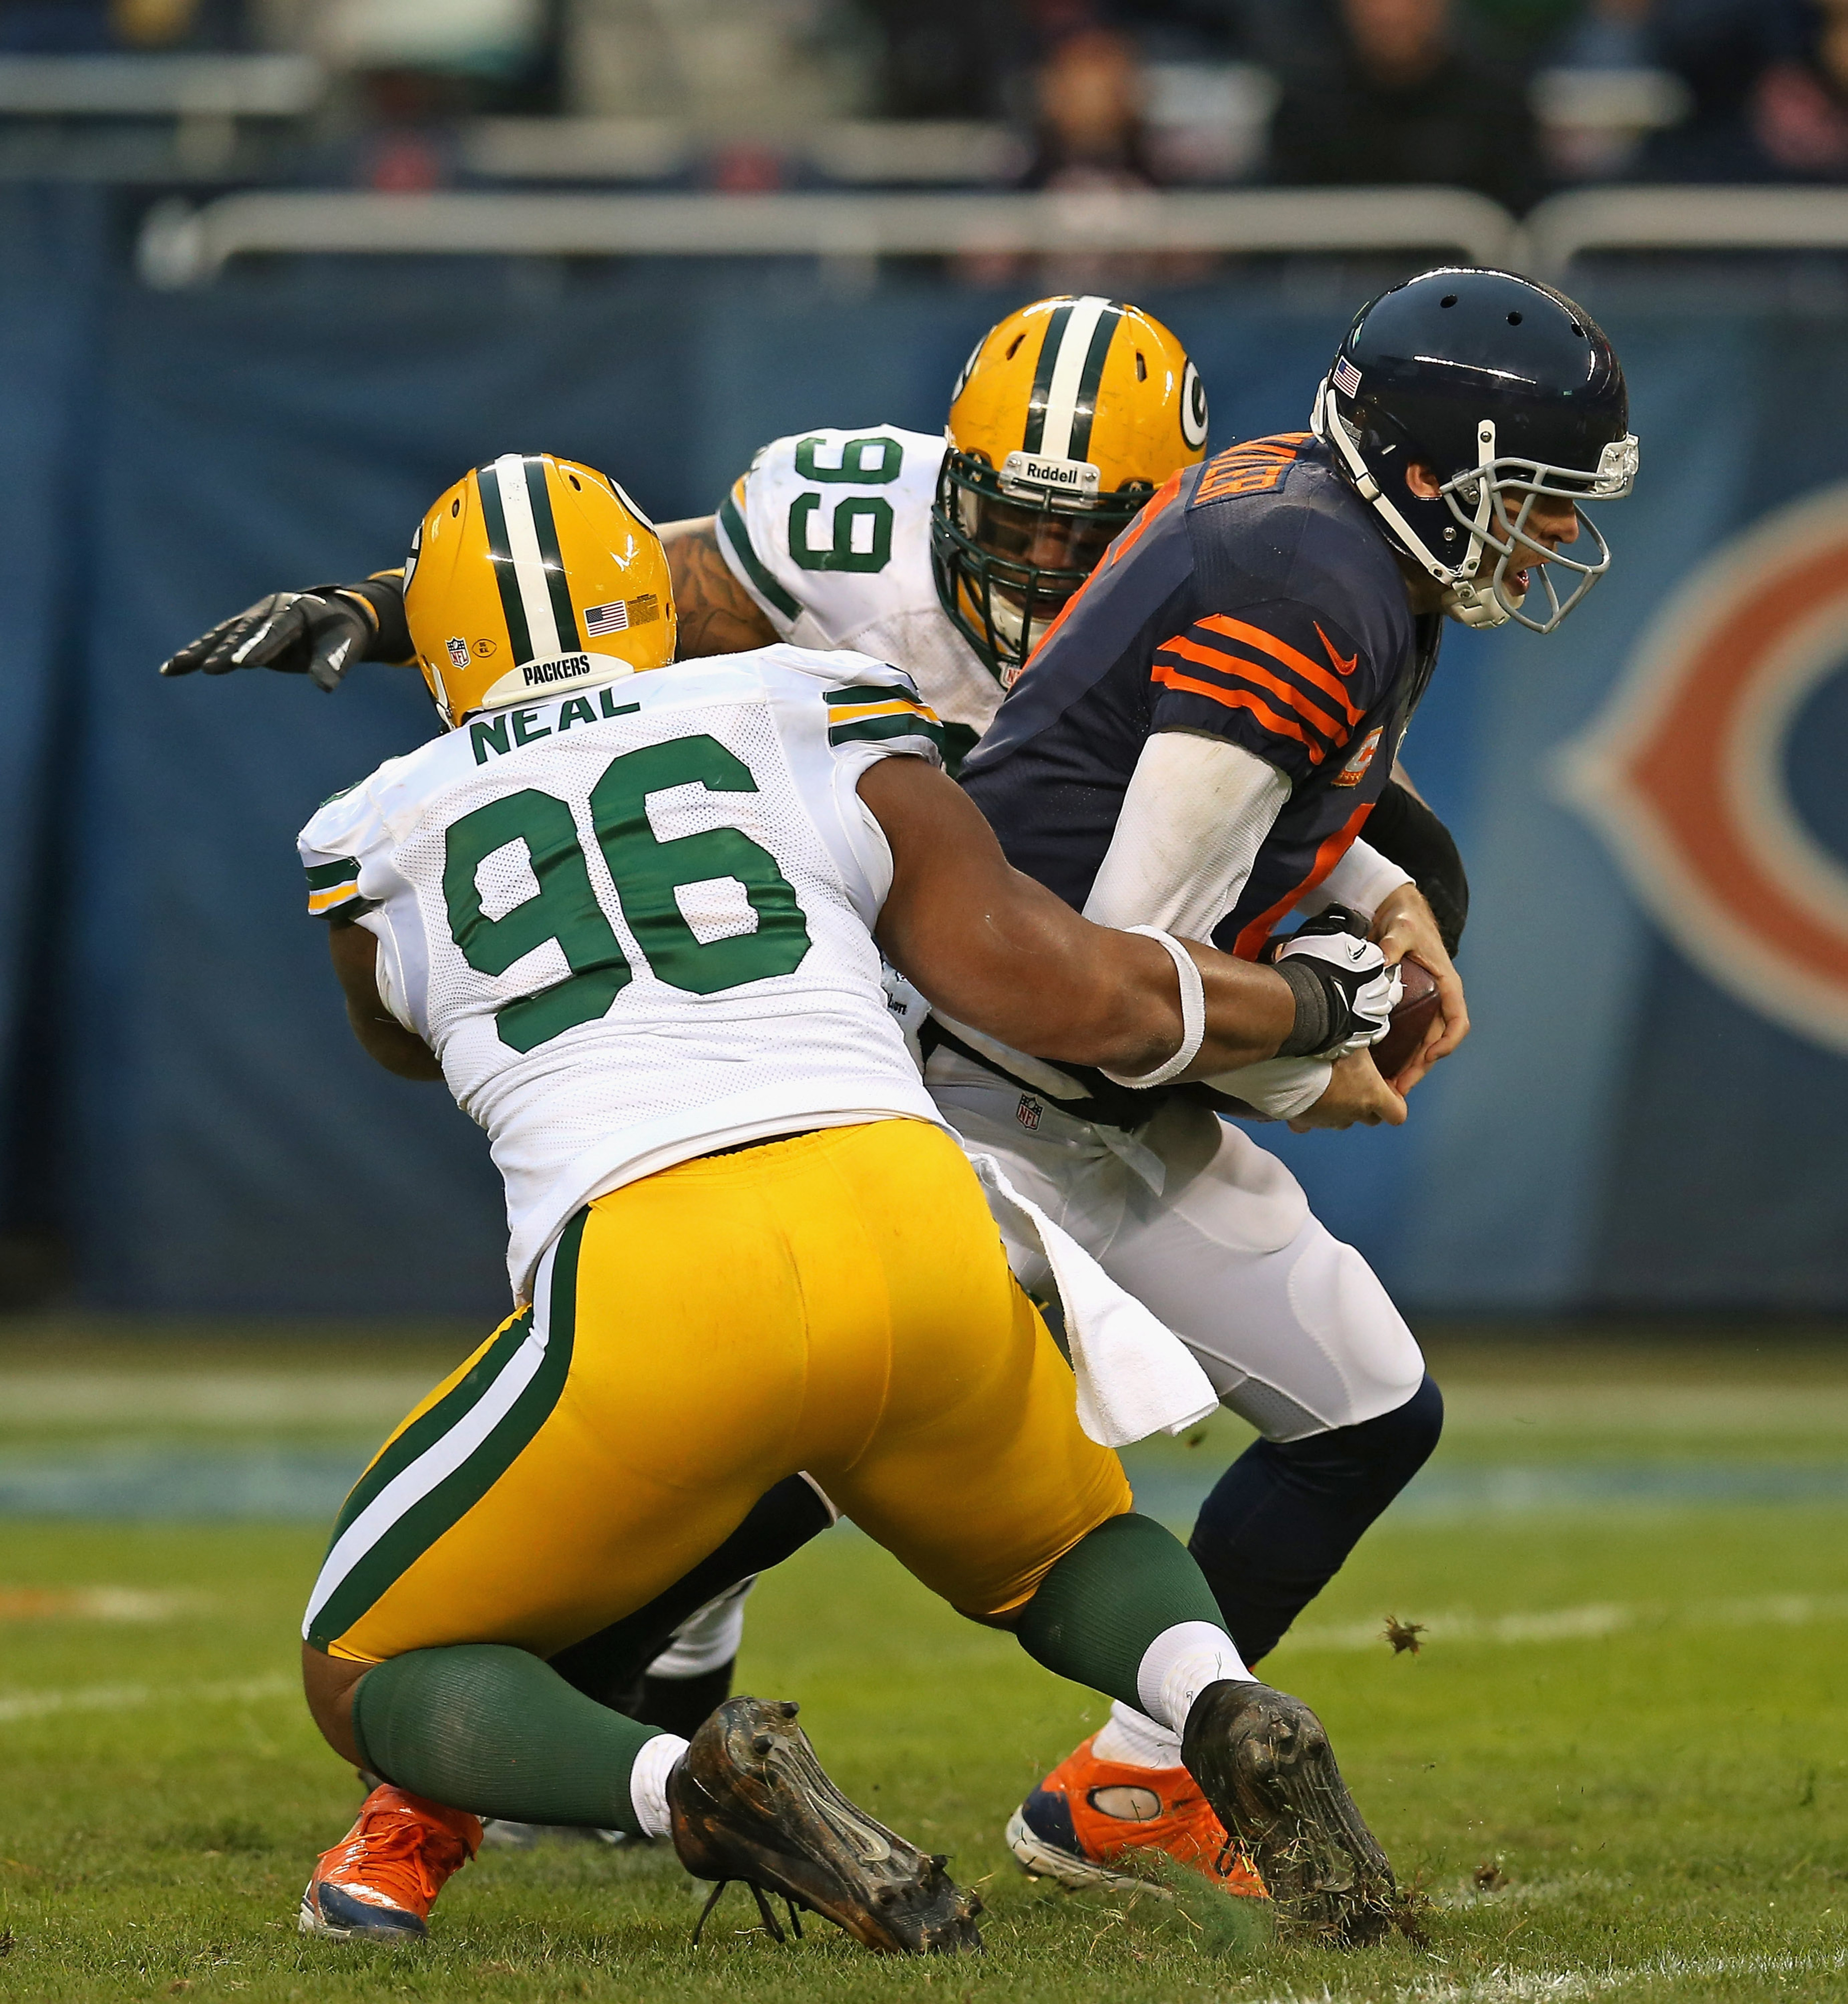 Jay Cutler (6) of the Chicago Bears is sacked by Mike Neal (96) and Jerel Worthy (99) of the Green Bay Packers during a 2012 game.